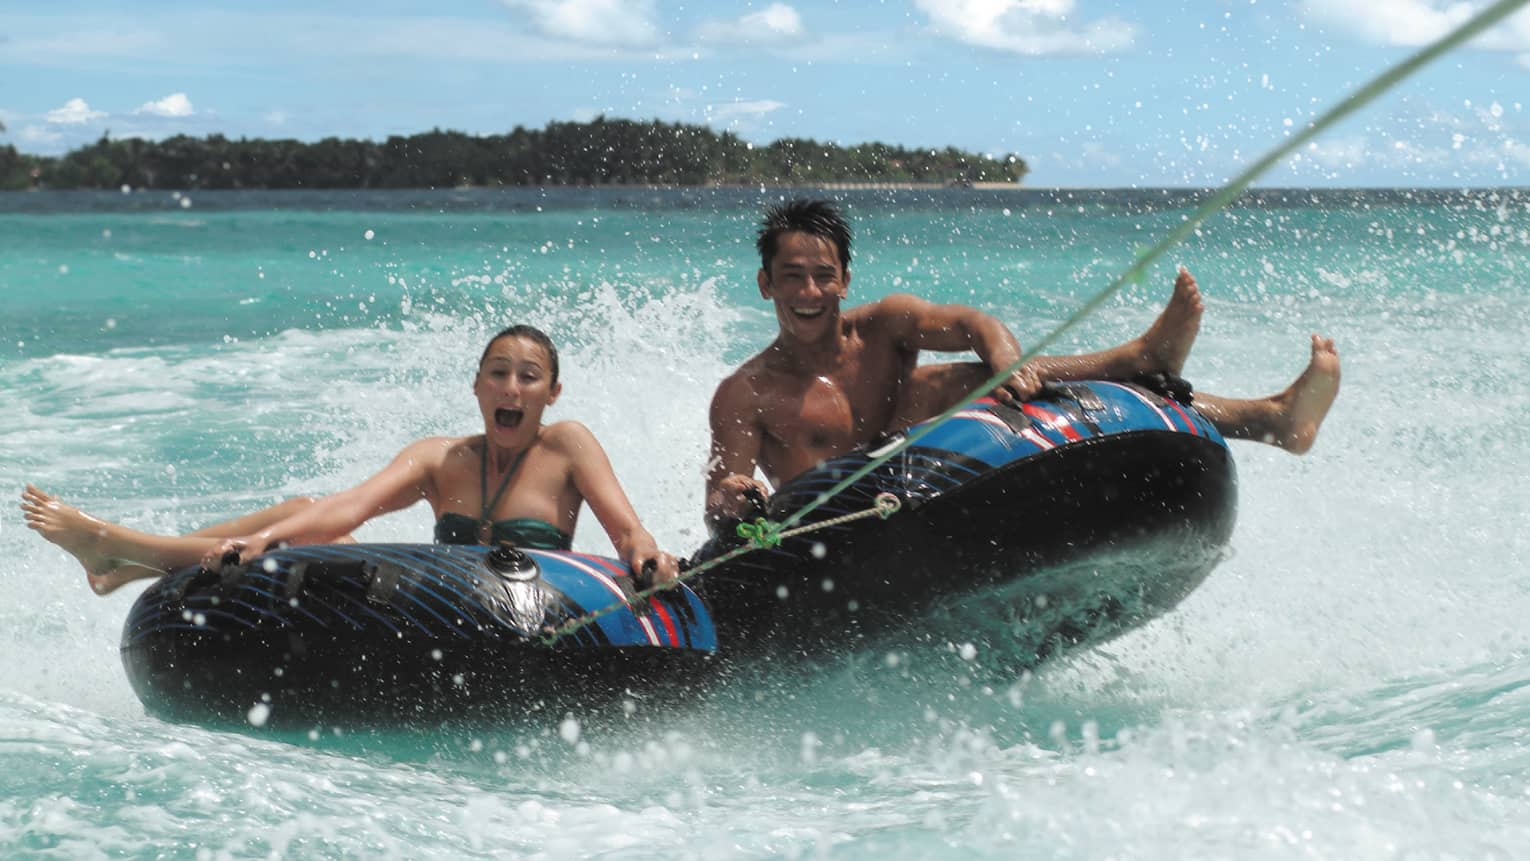 Laughing man and woman hold onto inflatable inner tubes as they ride on ocean